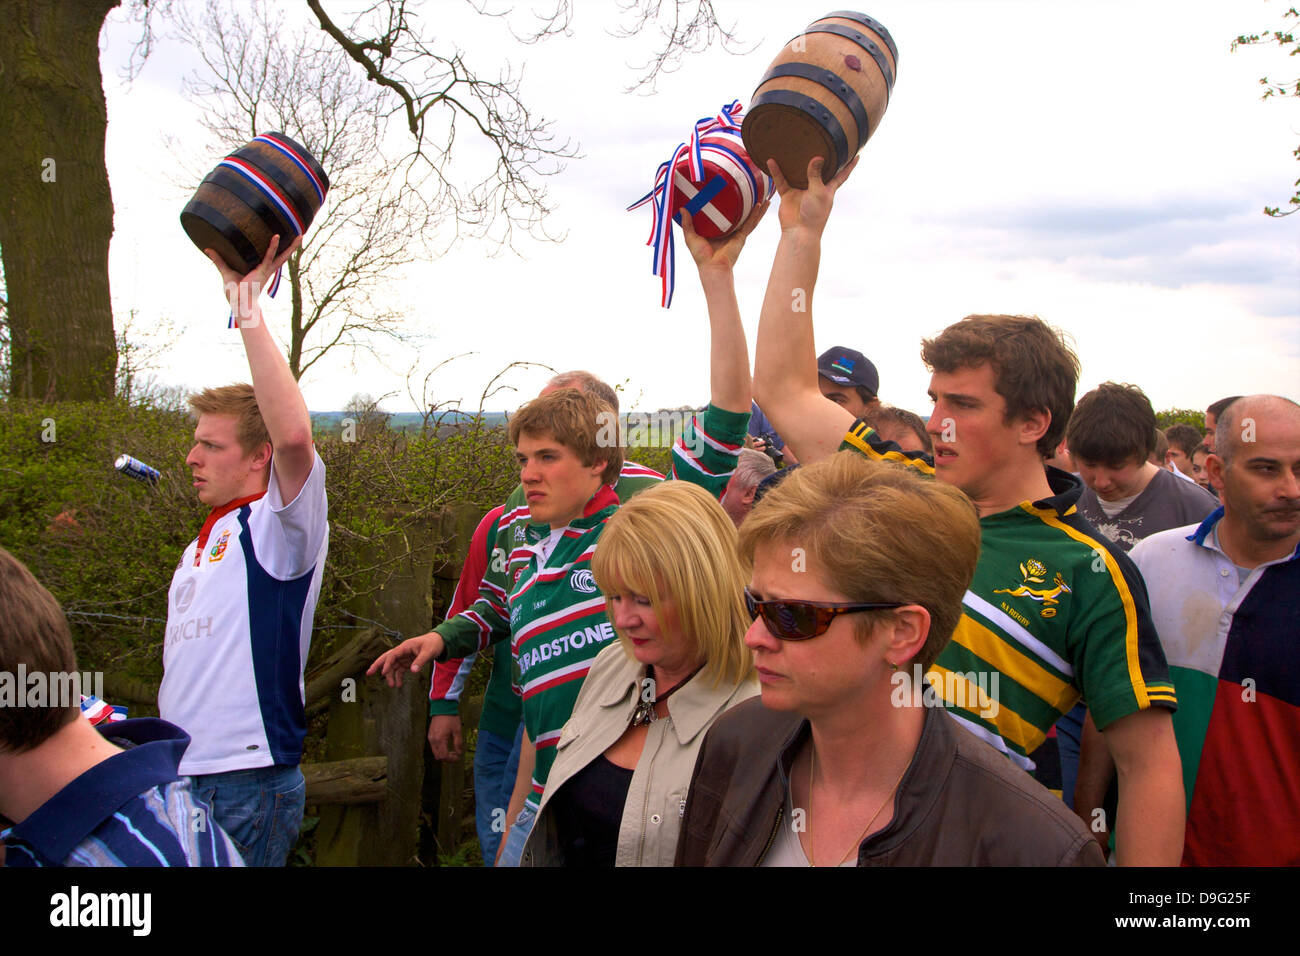 Participants of the Procession for the Old Annual Custom of Bottle-kicking, Hallaton, Leicestershire, England, UK - Stock Image